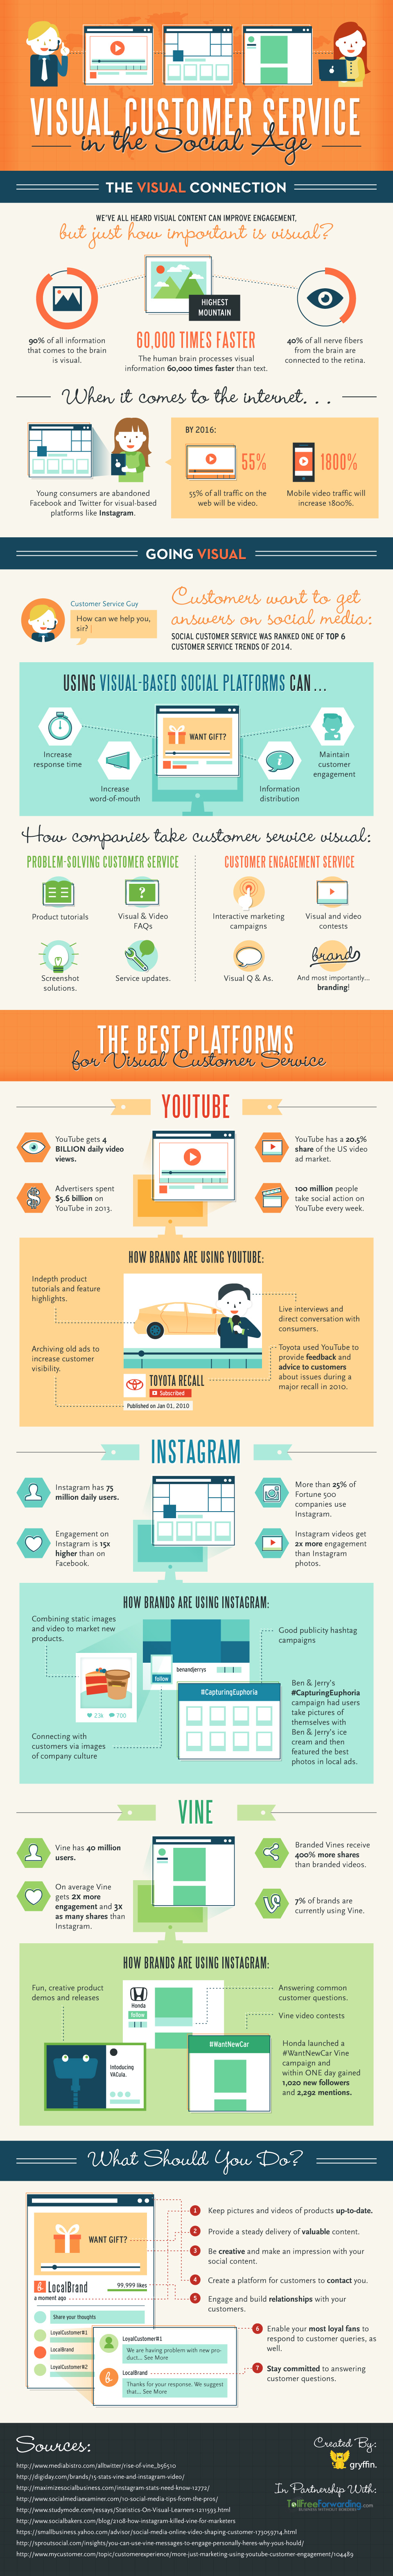 Visual Customer Service In The Social Age